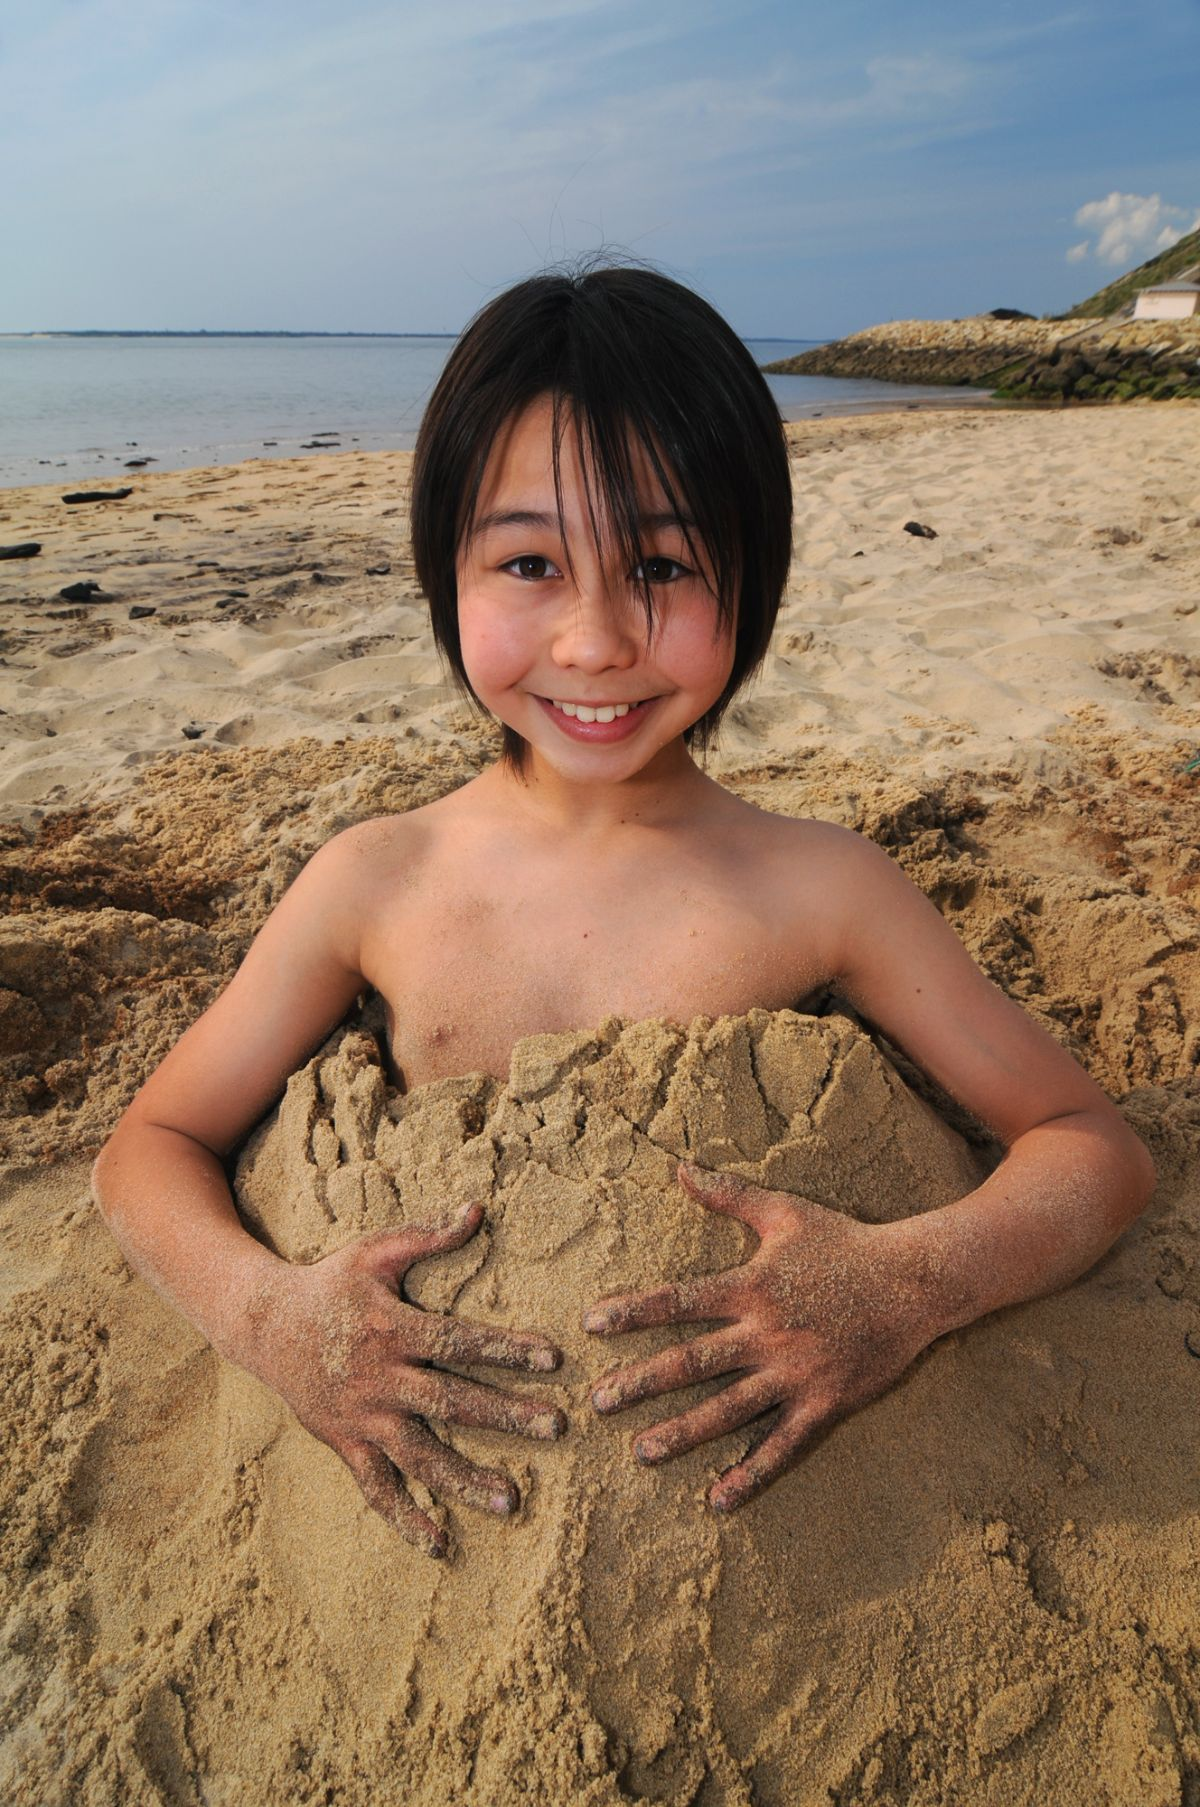 a boy with dark hair smiles at the camera buried up to his chest in sand